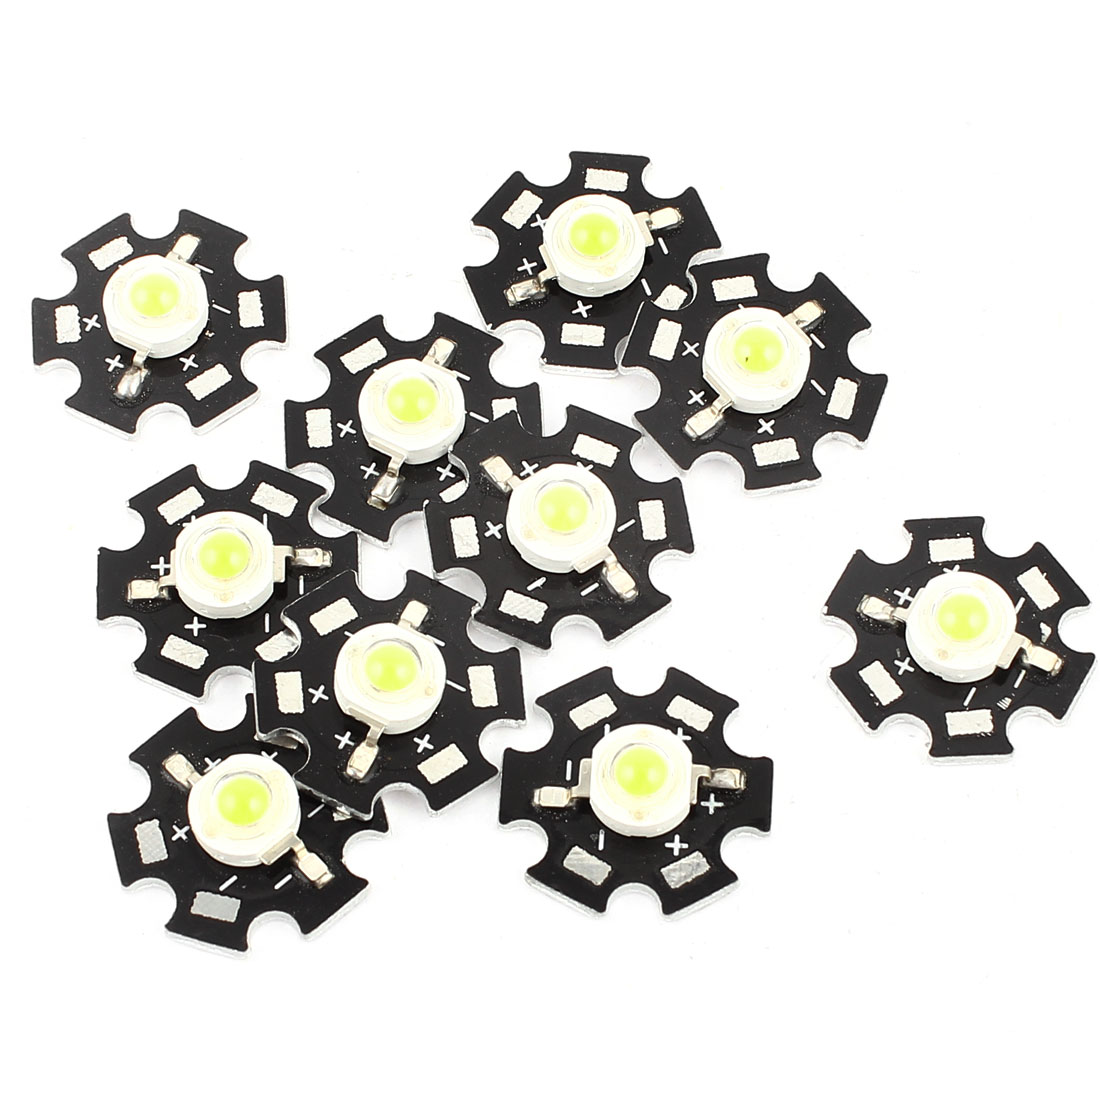 1W 3.0-3.6V 350mA LED Lamp Light Emitter Bead 20mm Heatsink Pure White 10PCS